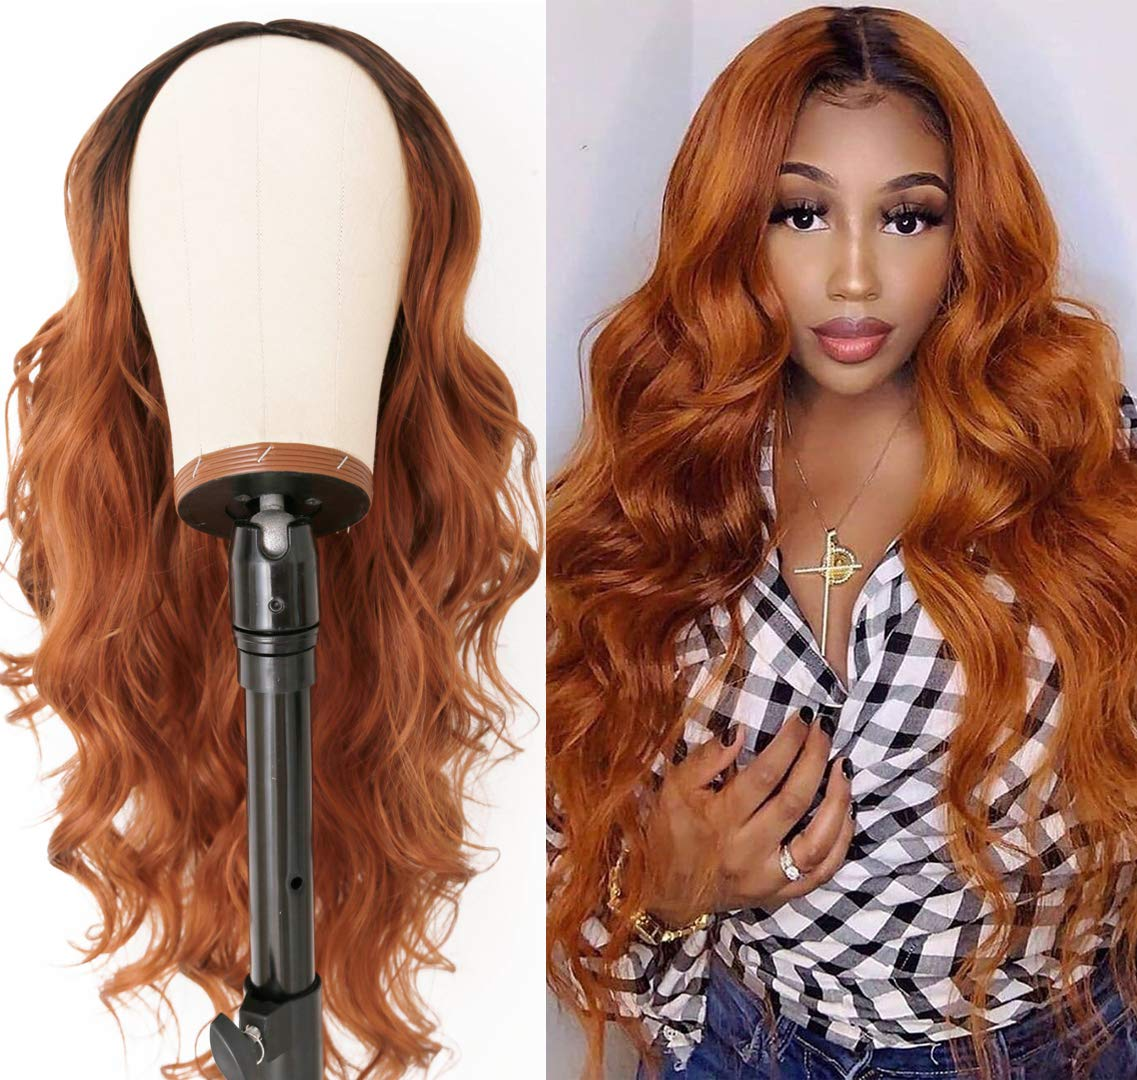 HILYN Popularity Orange Brown Wigs Long Loose Curly Fibe Wavy Wig Portland Mall Synthetic